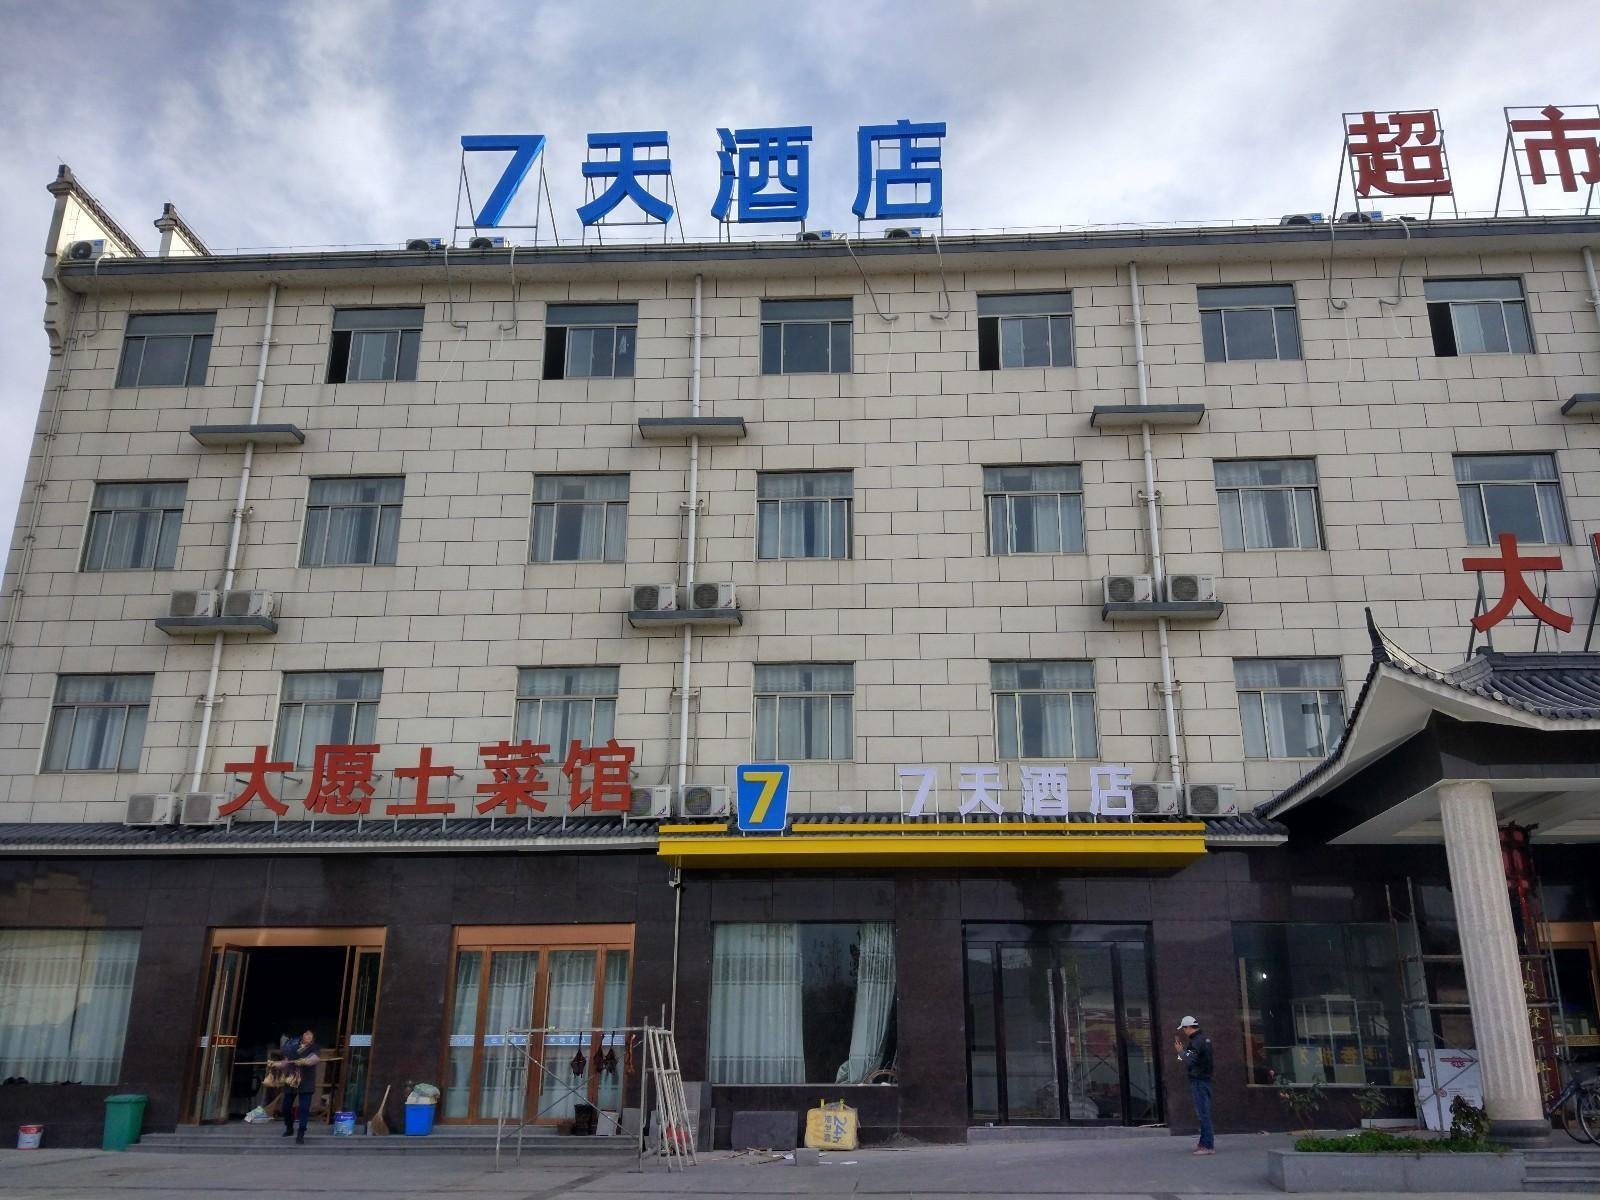 7 Days Inn·Chizhou Mount Jiuhua, Chizhou